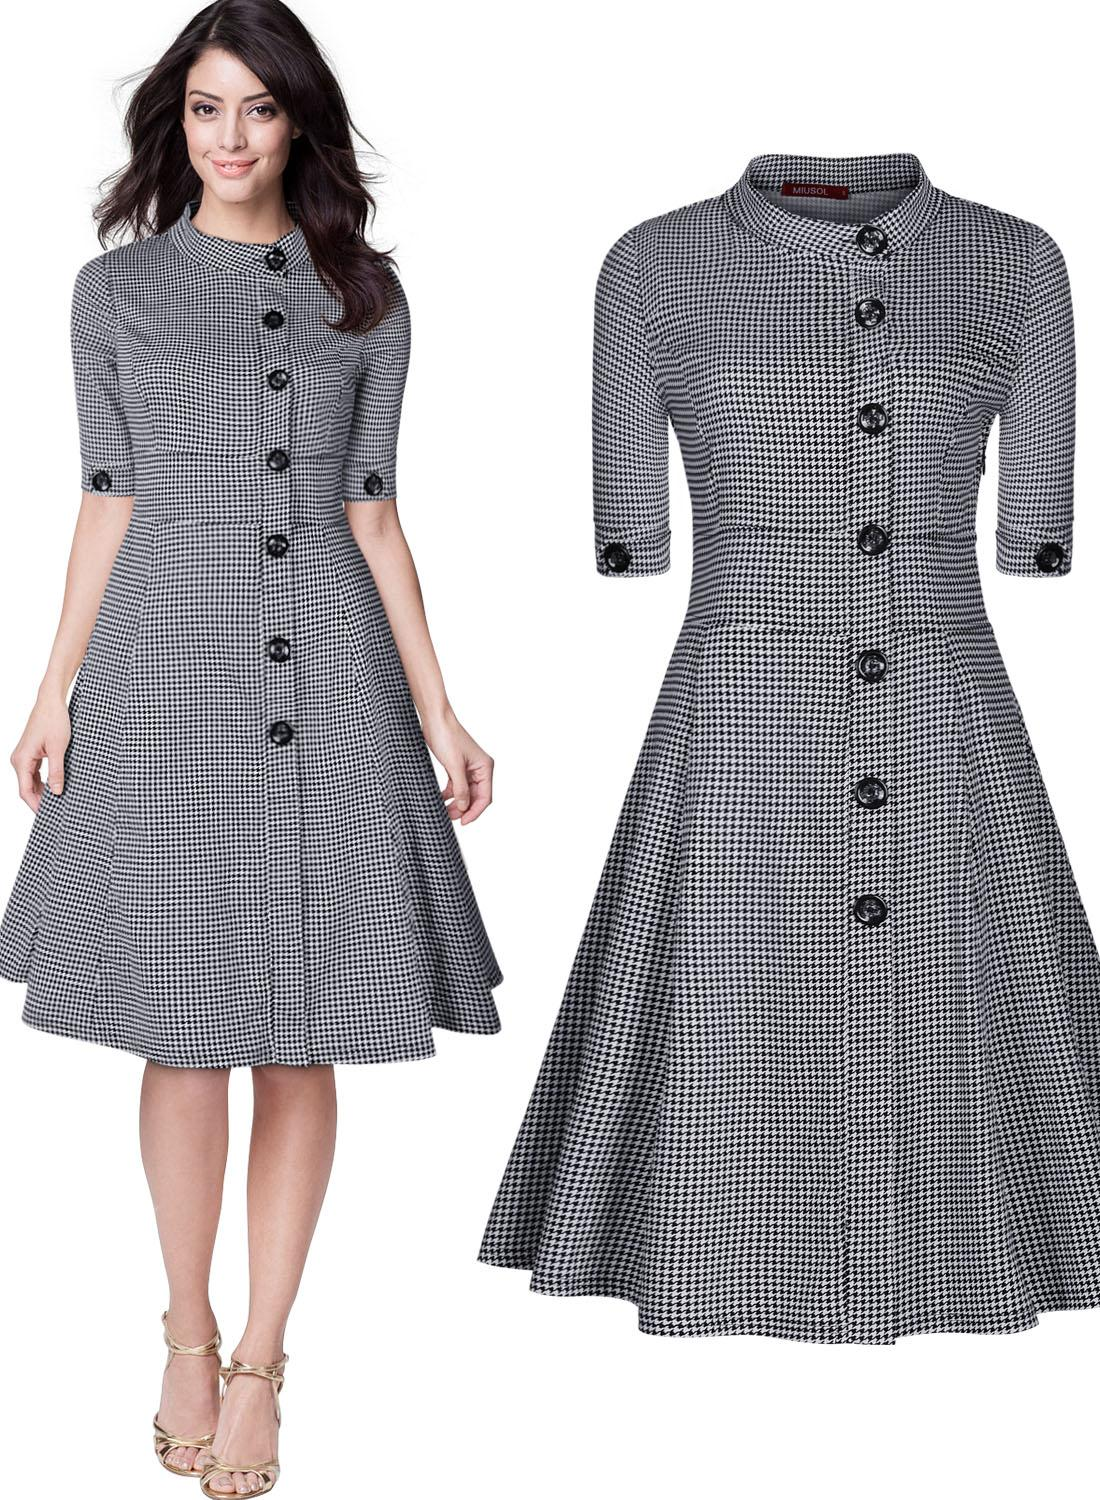 Women 39 s classic 1950 39 s vintage audrey gingham checks for Best check designs